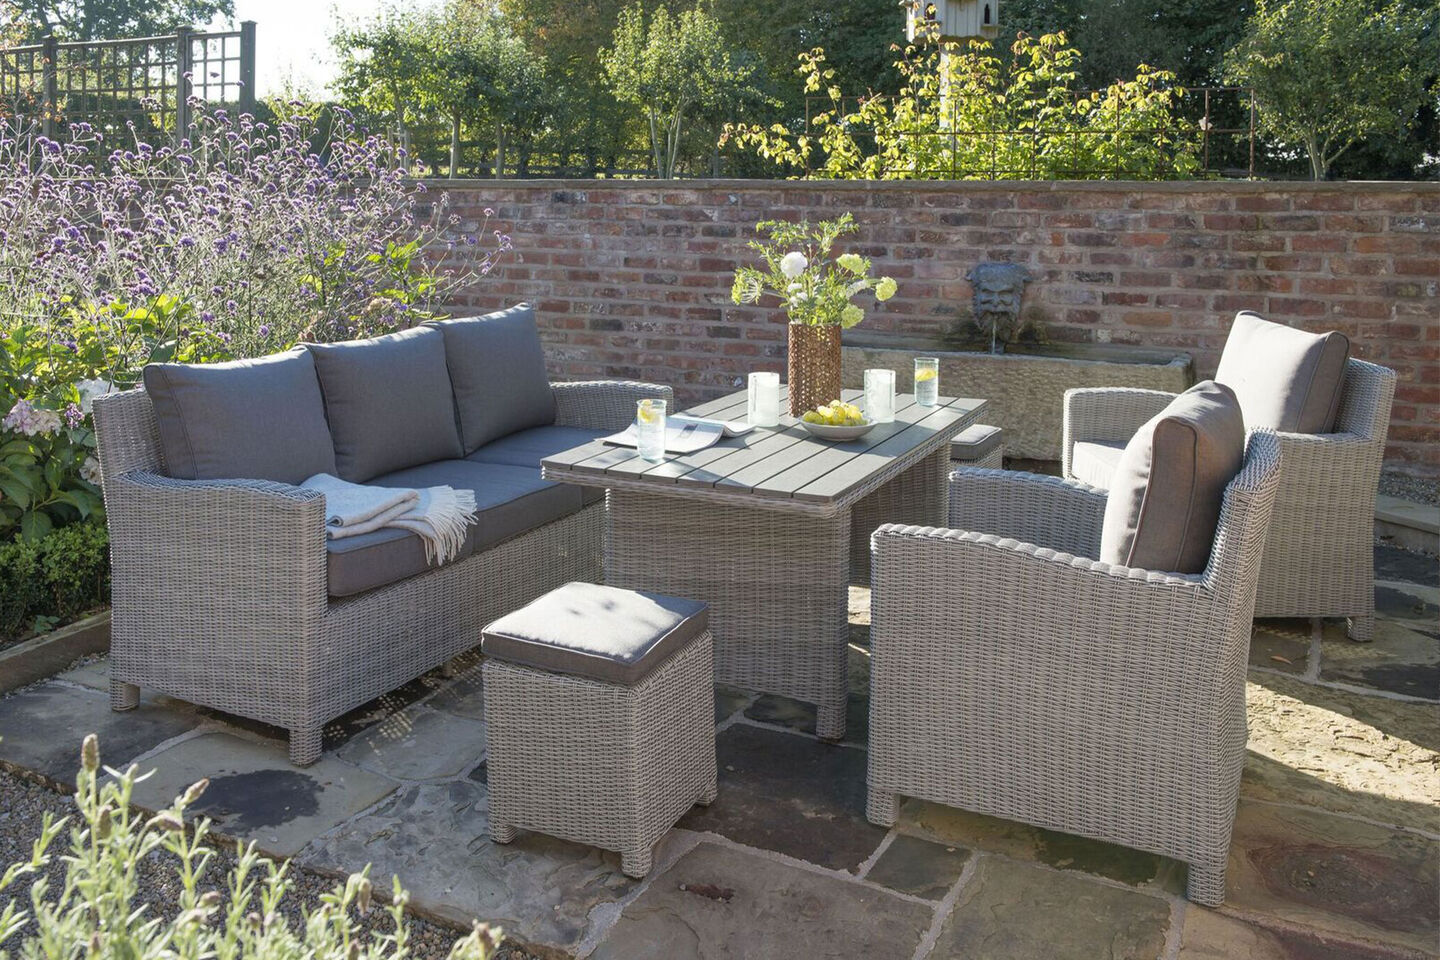 Palma & Cupido by Kettler gray woven lounge furniture on slate patio